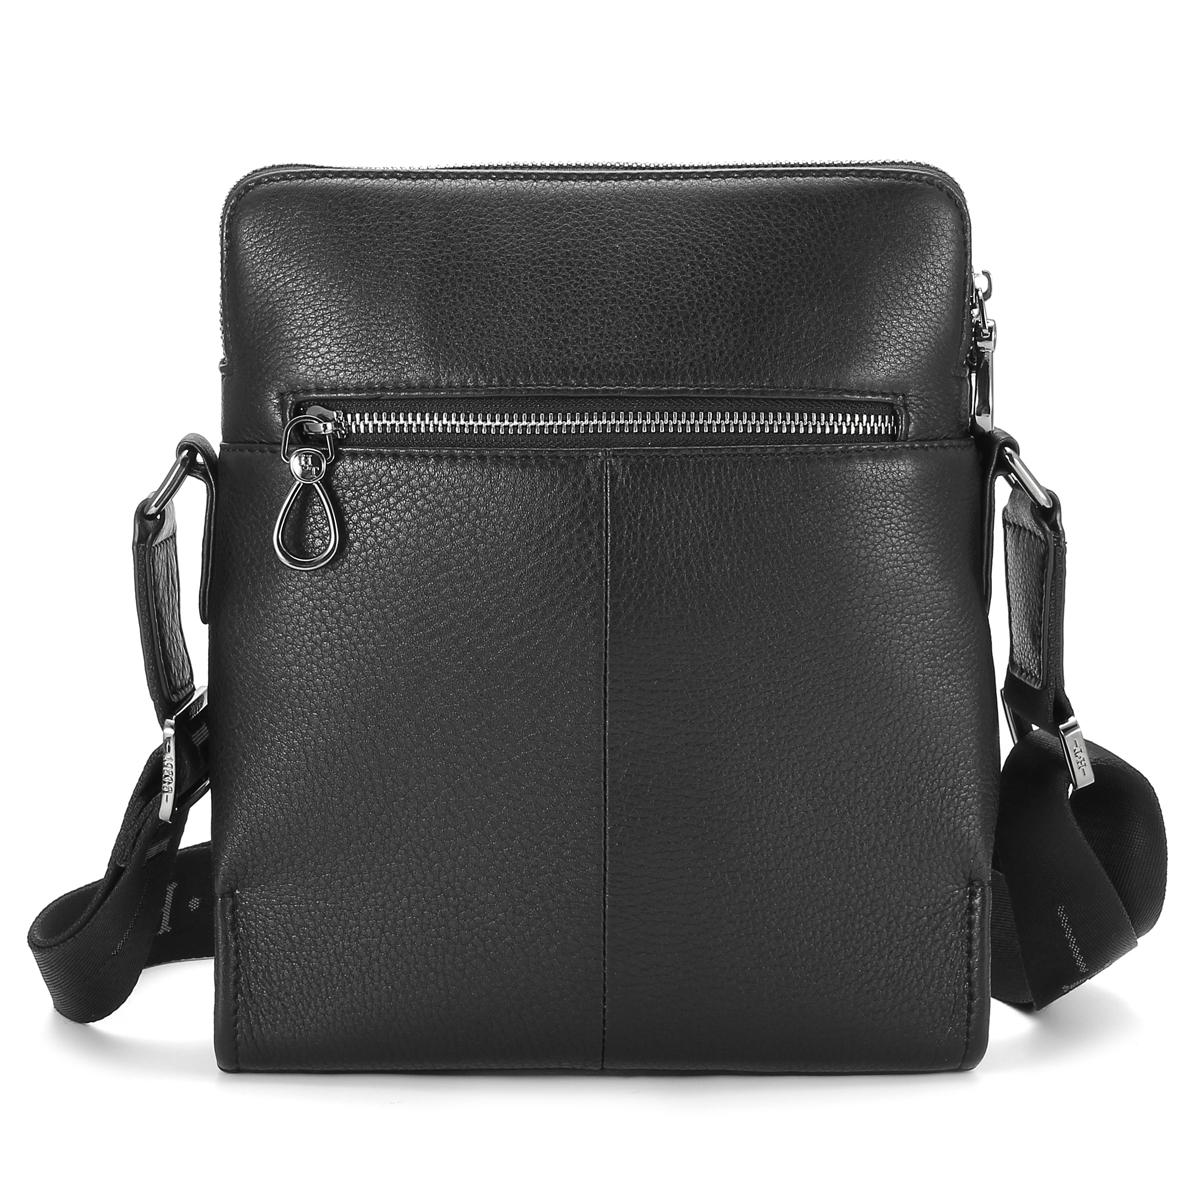 HT 100% Genuine Leather Messenger Bag Mans Crossbody Bags Brand New  Business Style Shoulder Handbags Black Satchel Bolsa Male-in Crossbody Bags  from Luggage ...